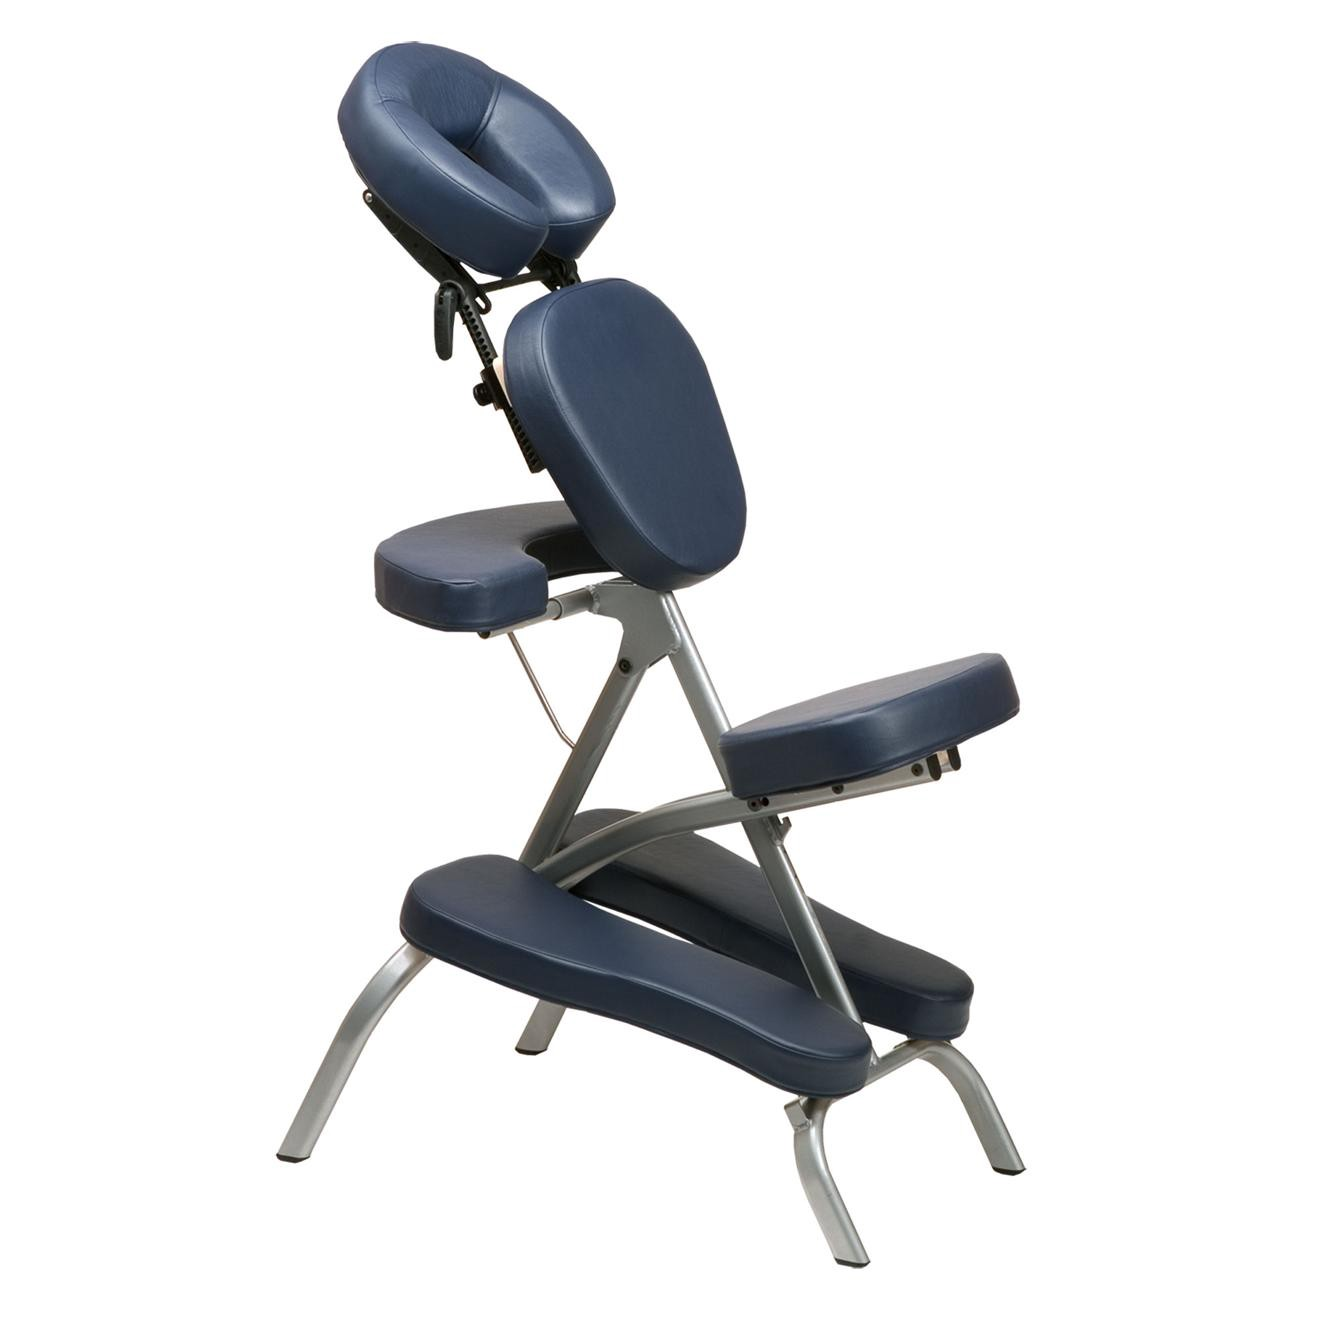 oakworks chair pro massage portal supplies chairs stone world